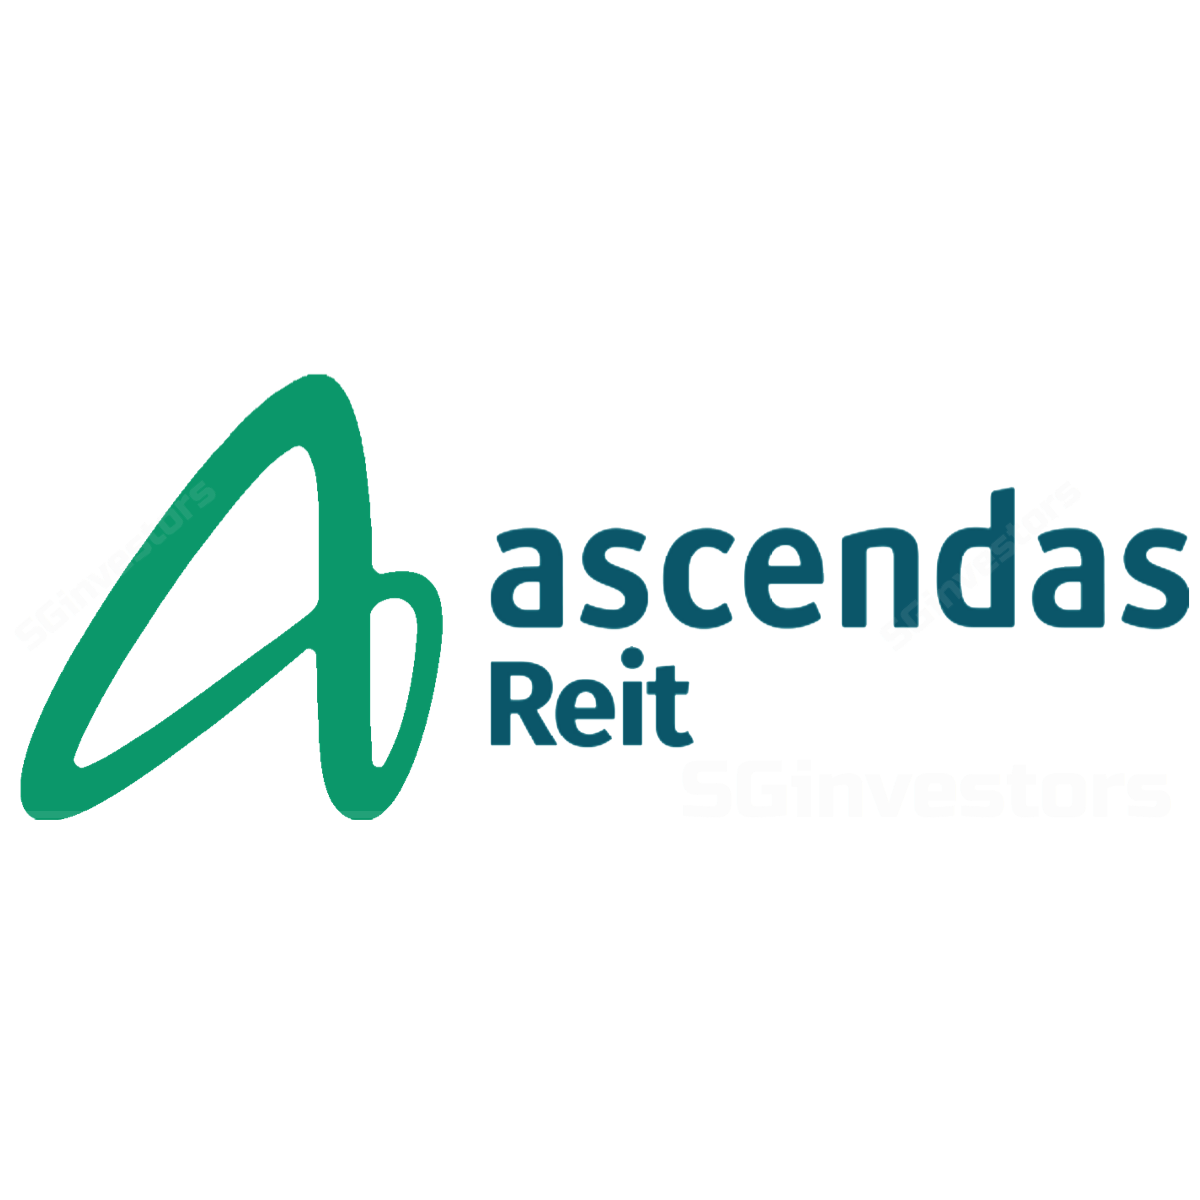 Ascendas REIT - RHB Invest 2017-05-31: Divestment Of Light Industrial Building A Positive